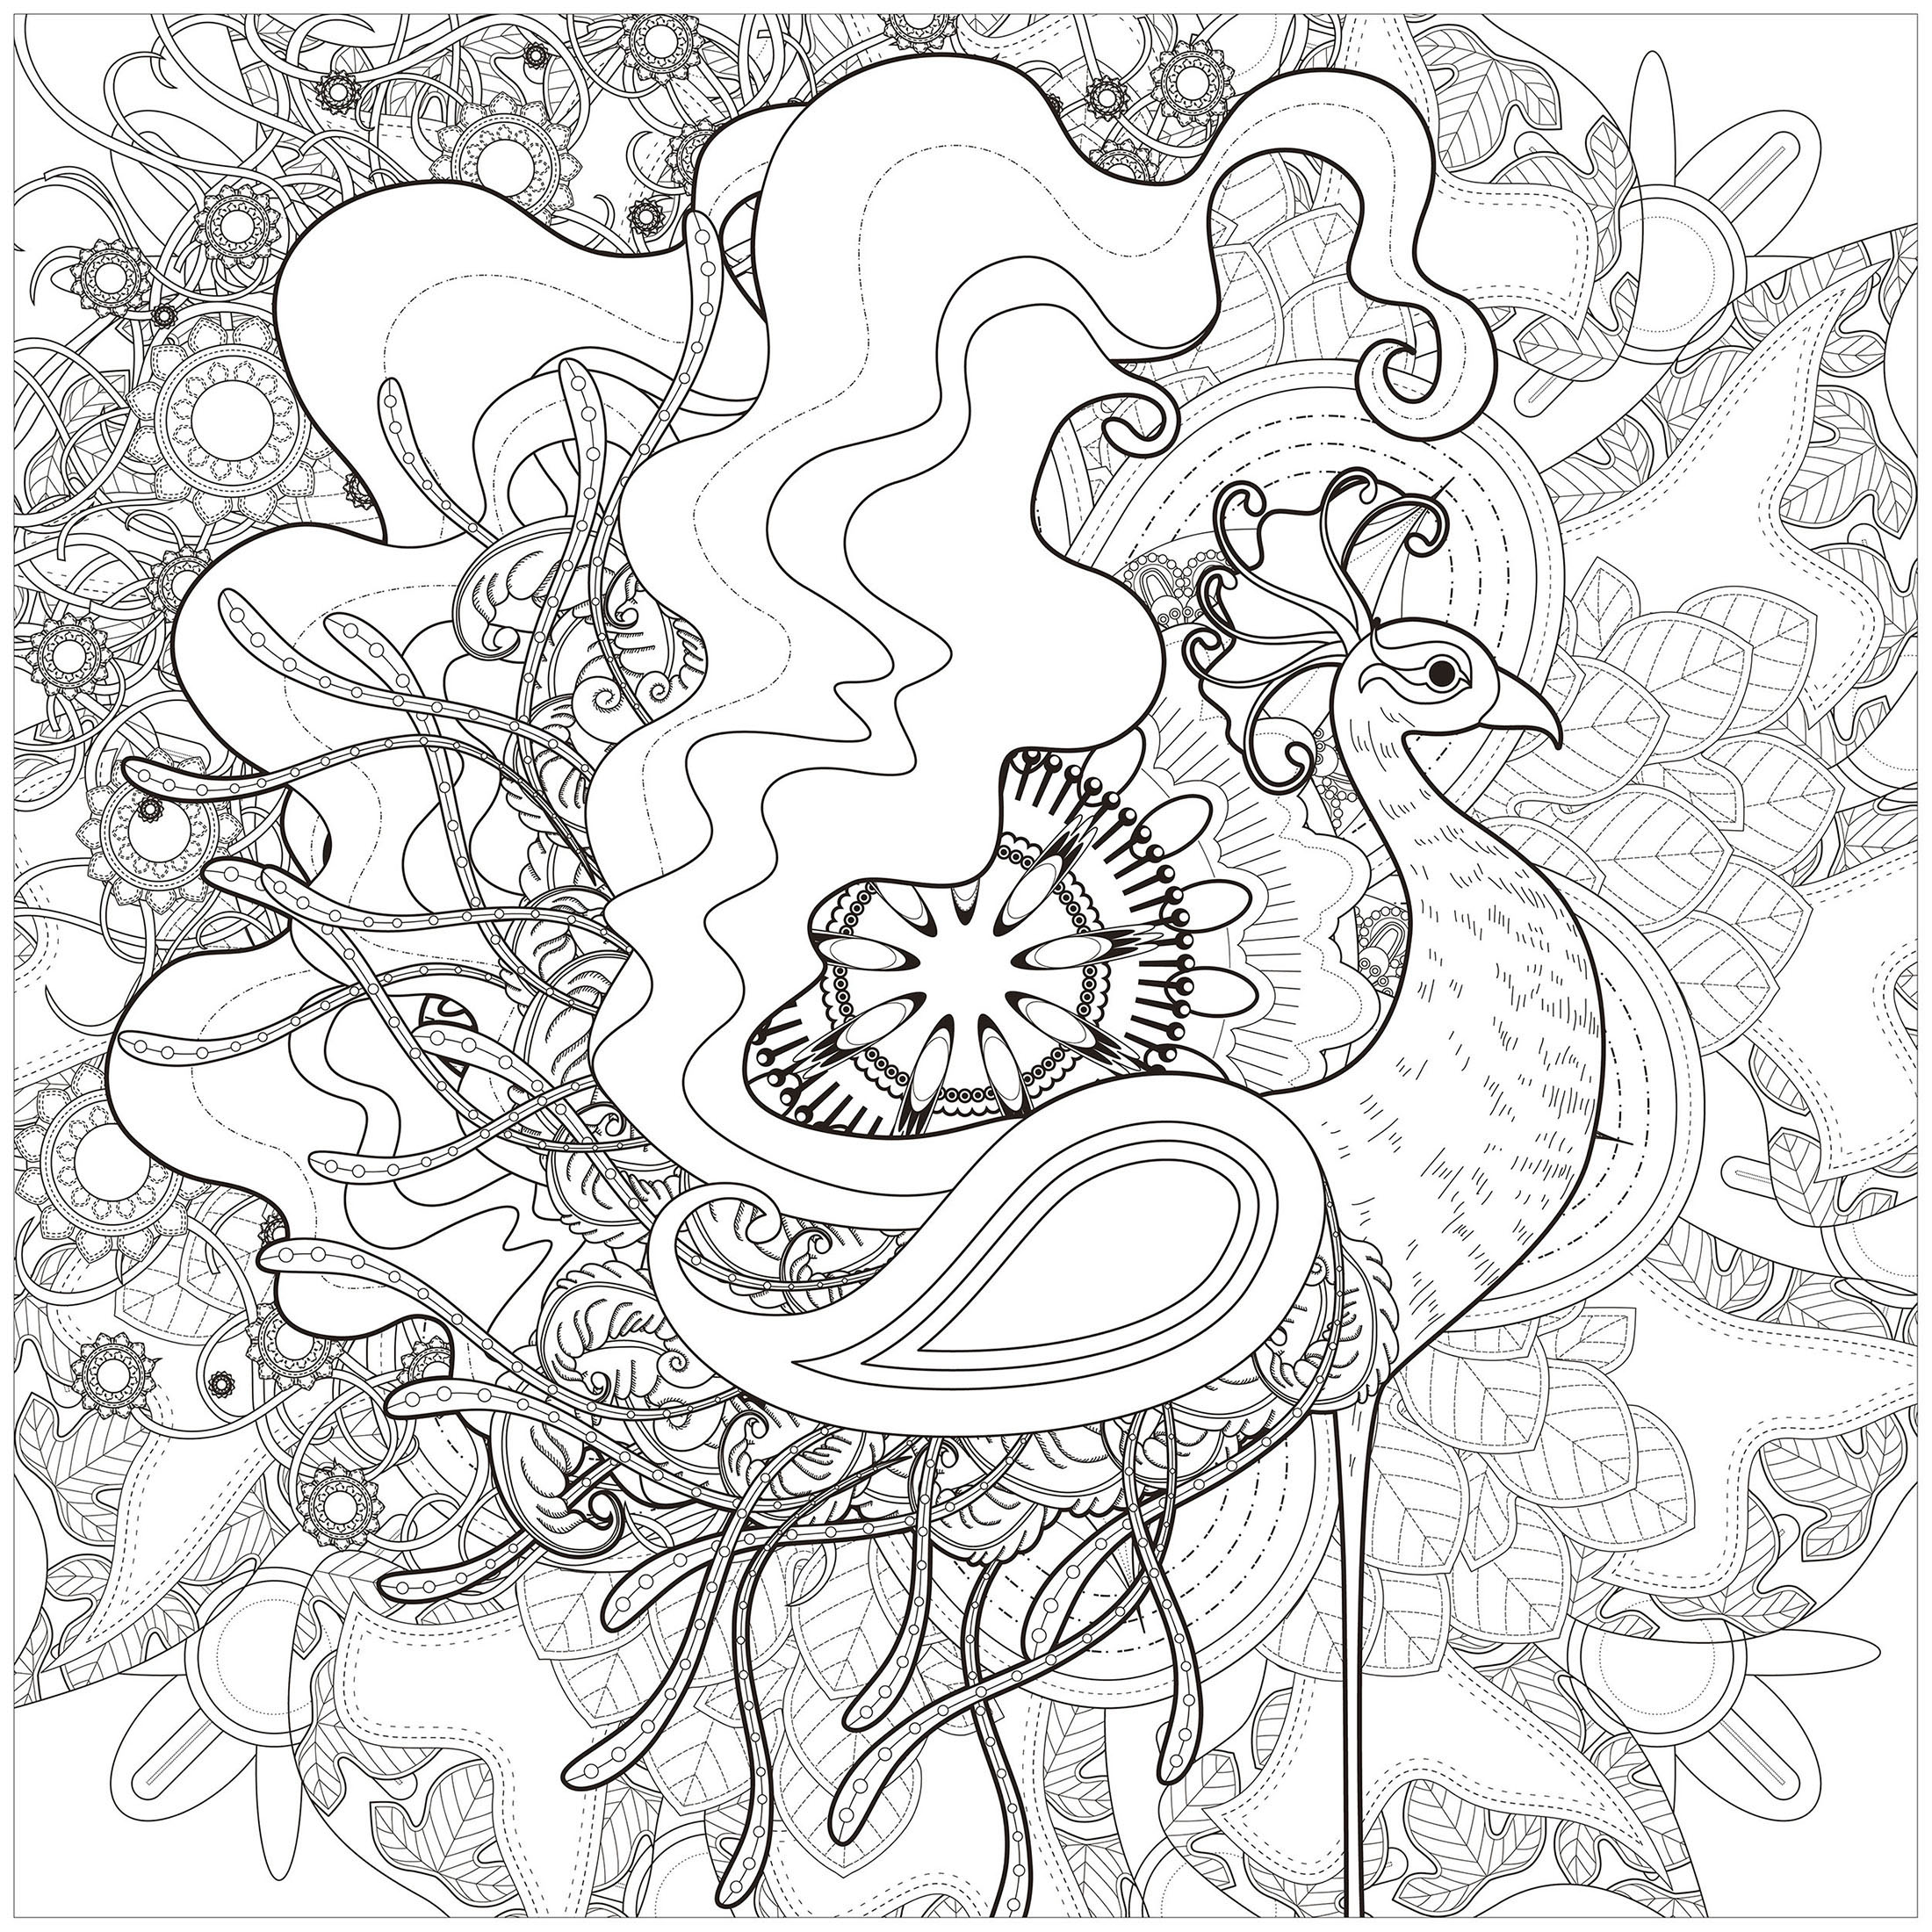 Sublime peacock on abstract background, drawn with different thickness lines